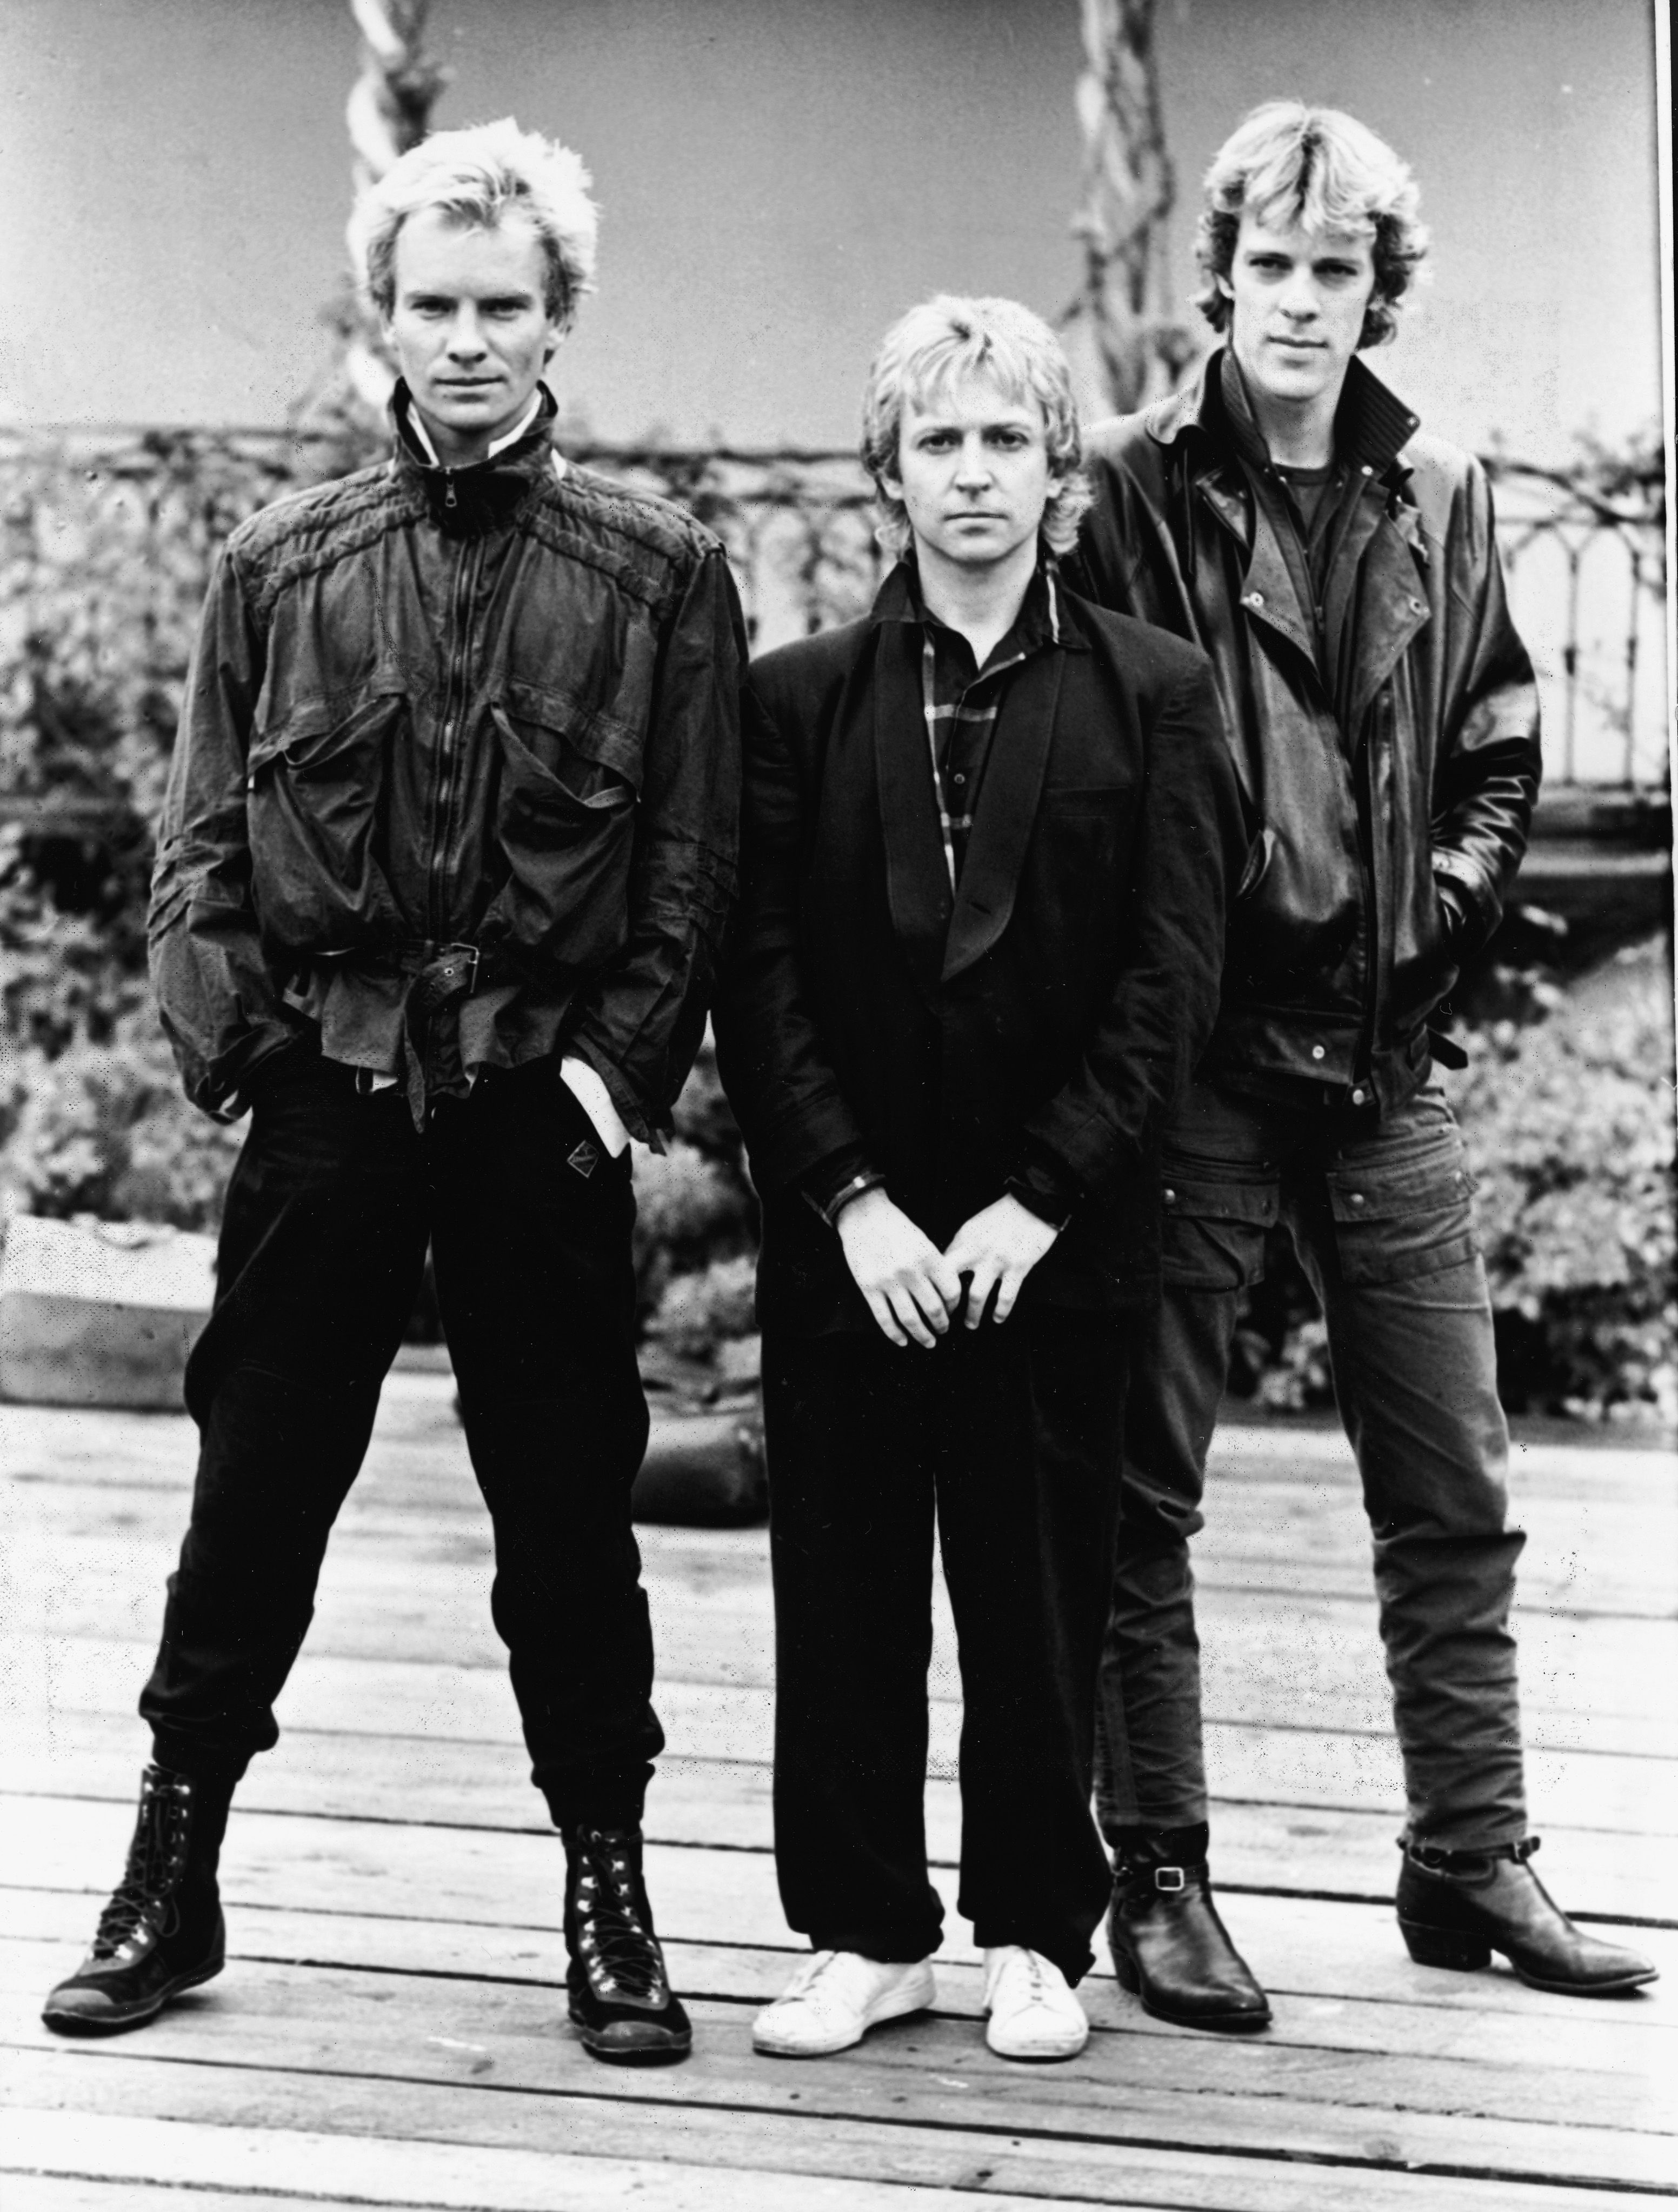 Pin by Chantele Gay on STING | The police band, Rock bands